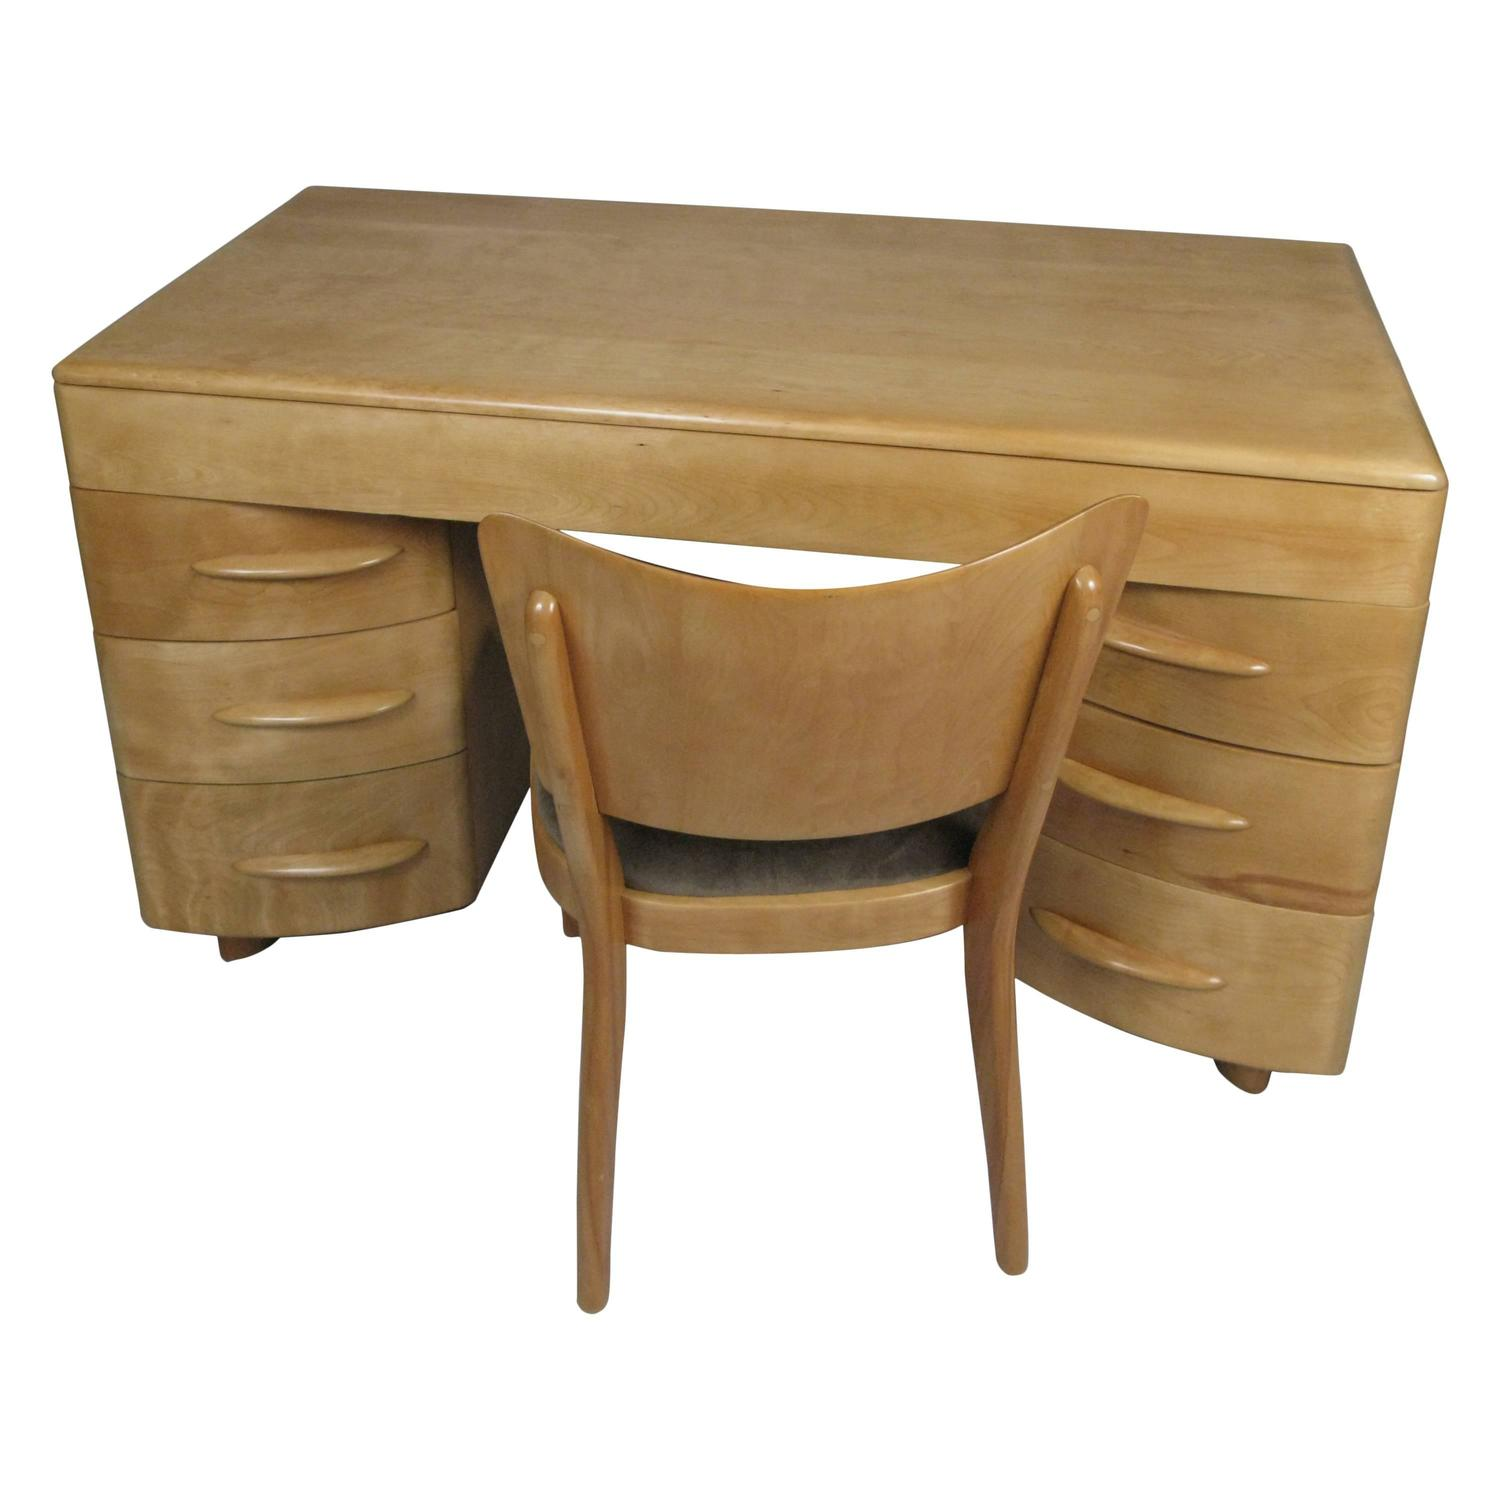 Vintage 1950s Birch Kneehole Desk And Chair By Heywood Wakefield At 1stdibs